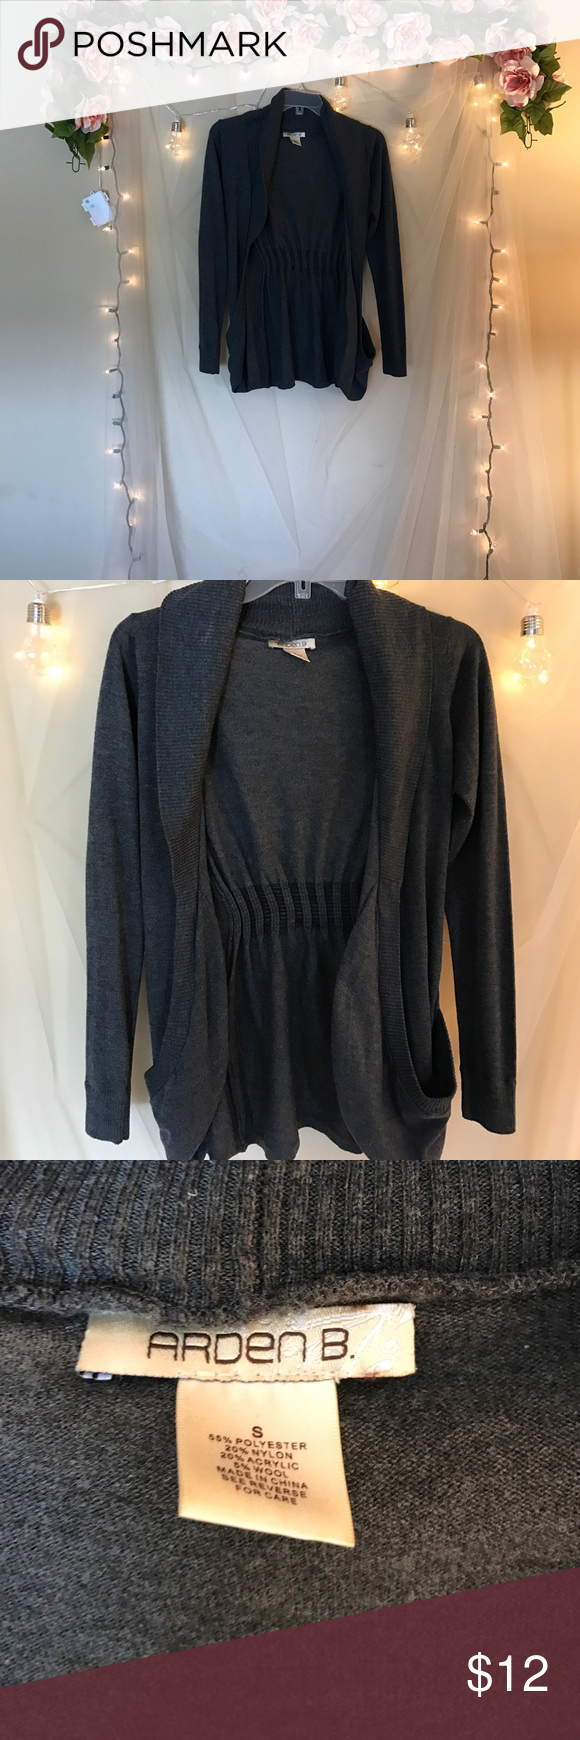 Arden B Gray Sweater Size S Arden B Gray Sweater Size S. Good condition scoop pockets. Arden B Sweaters